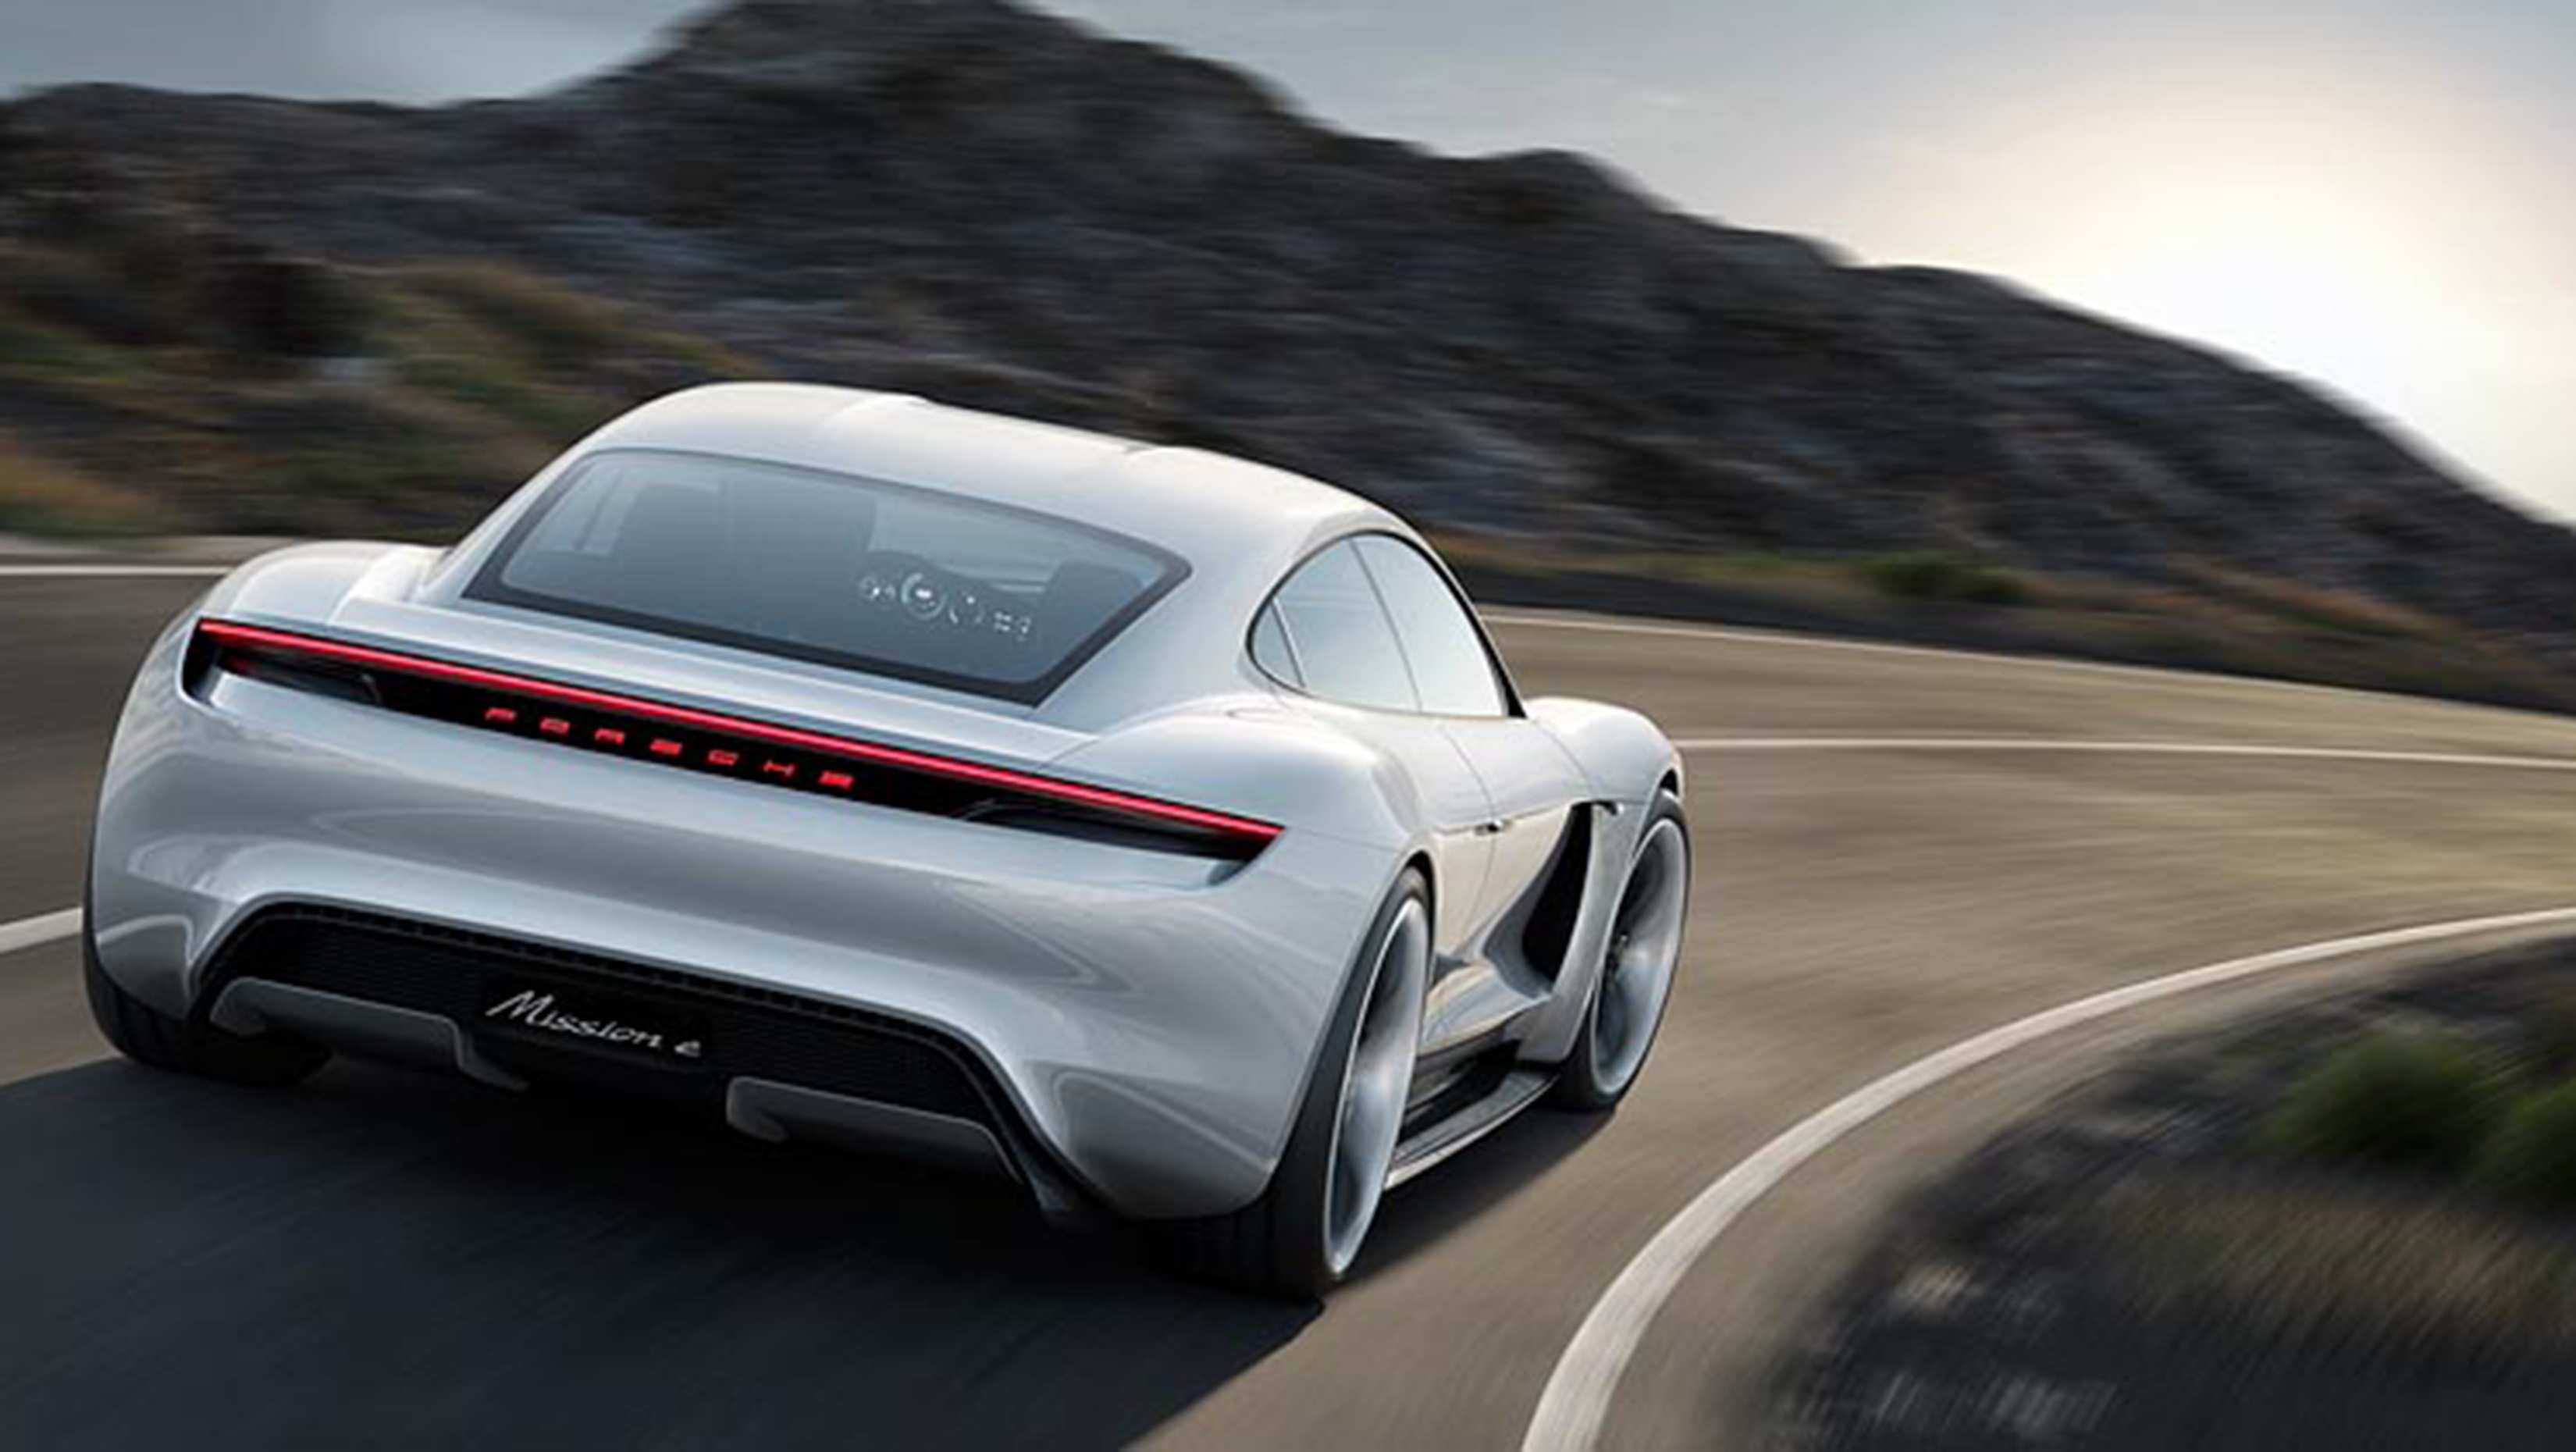 85 Best Review 2019 Porsche Electric Car Redesign and Concept with 2019 Porsche Electric Car